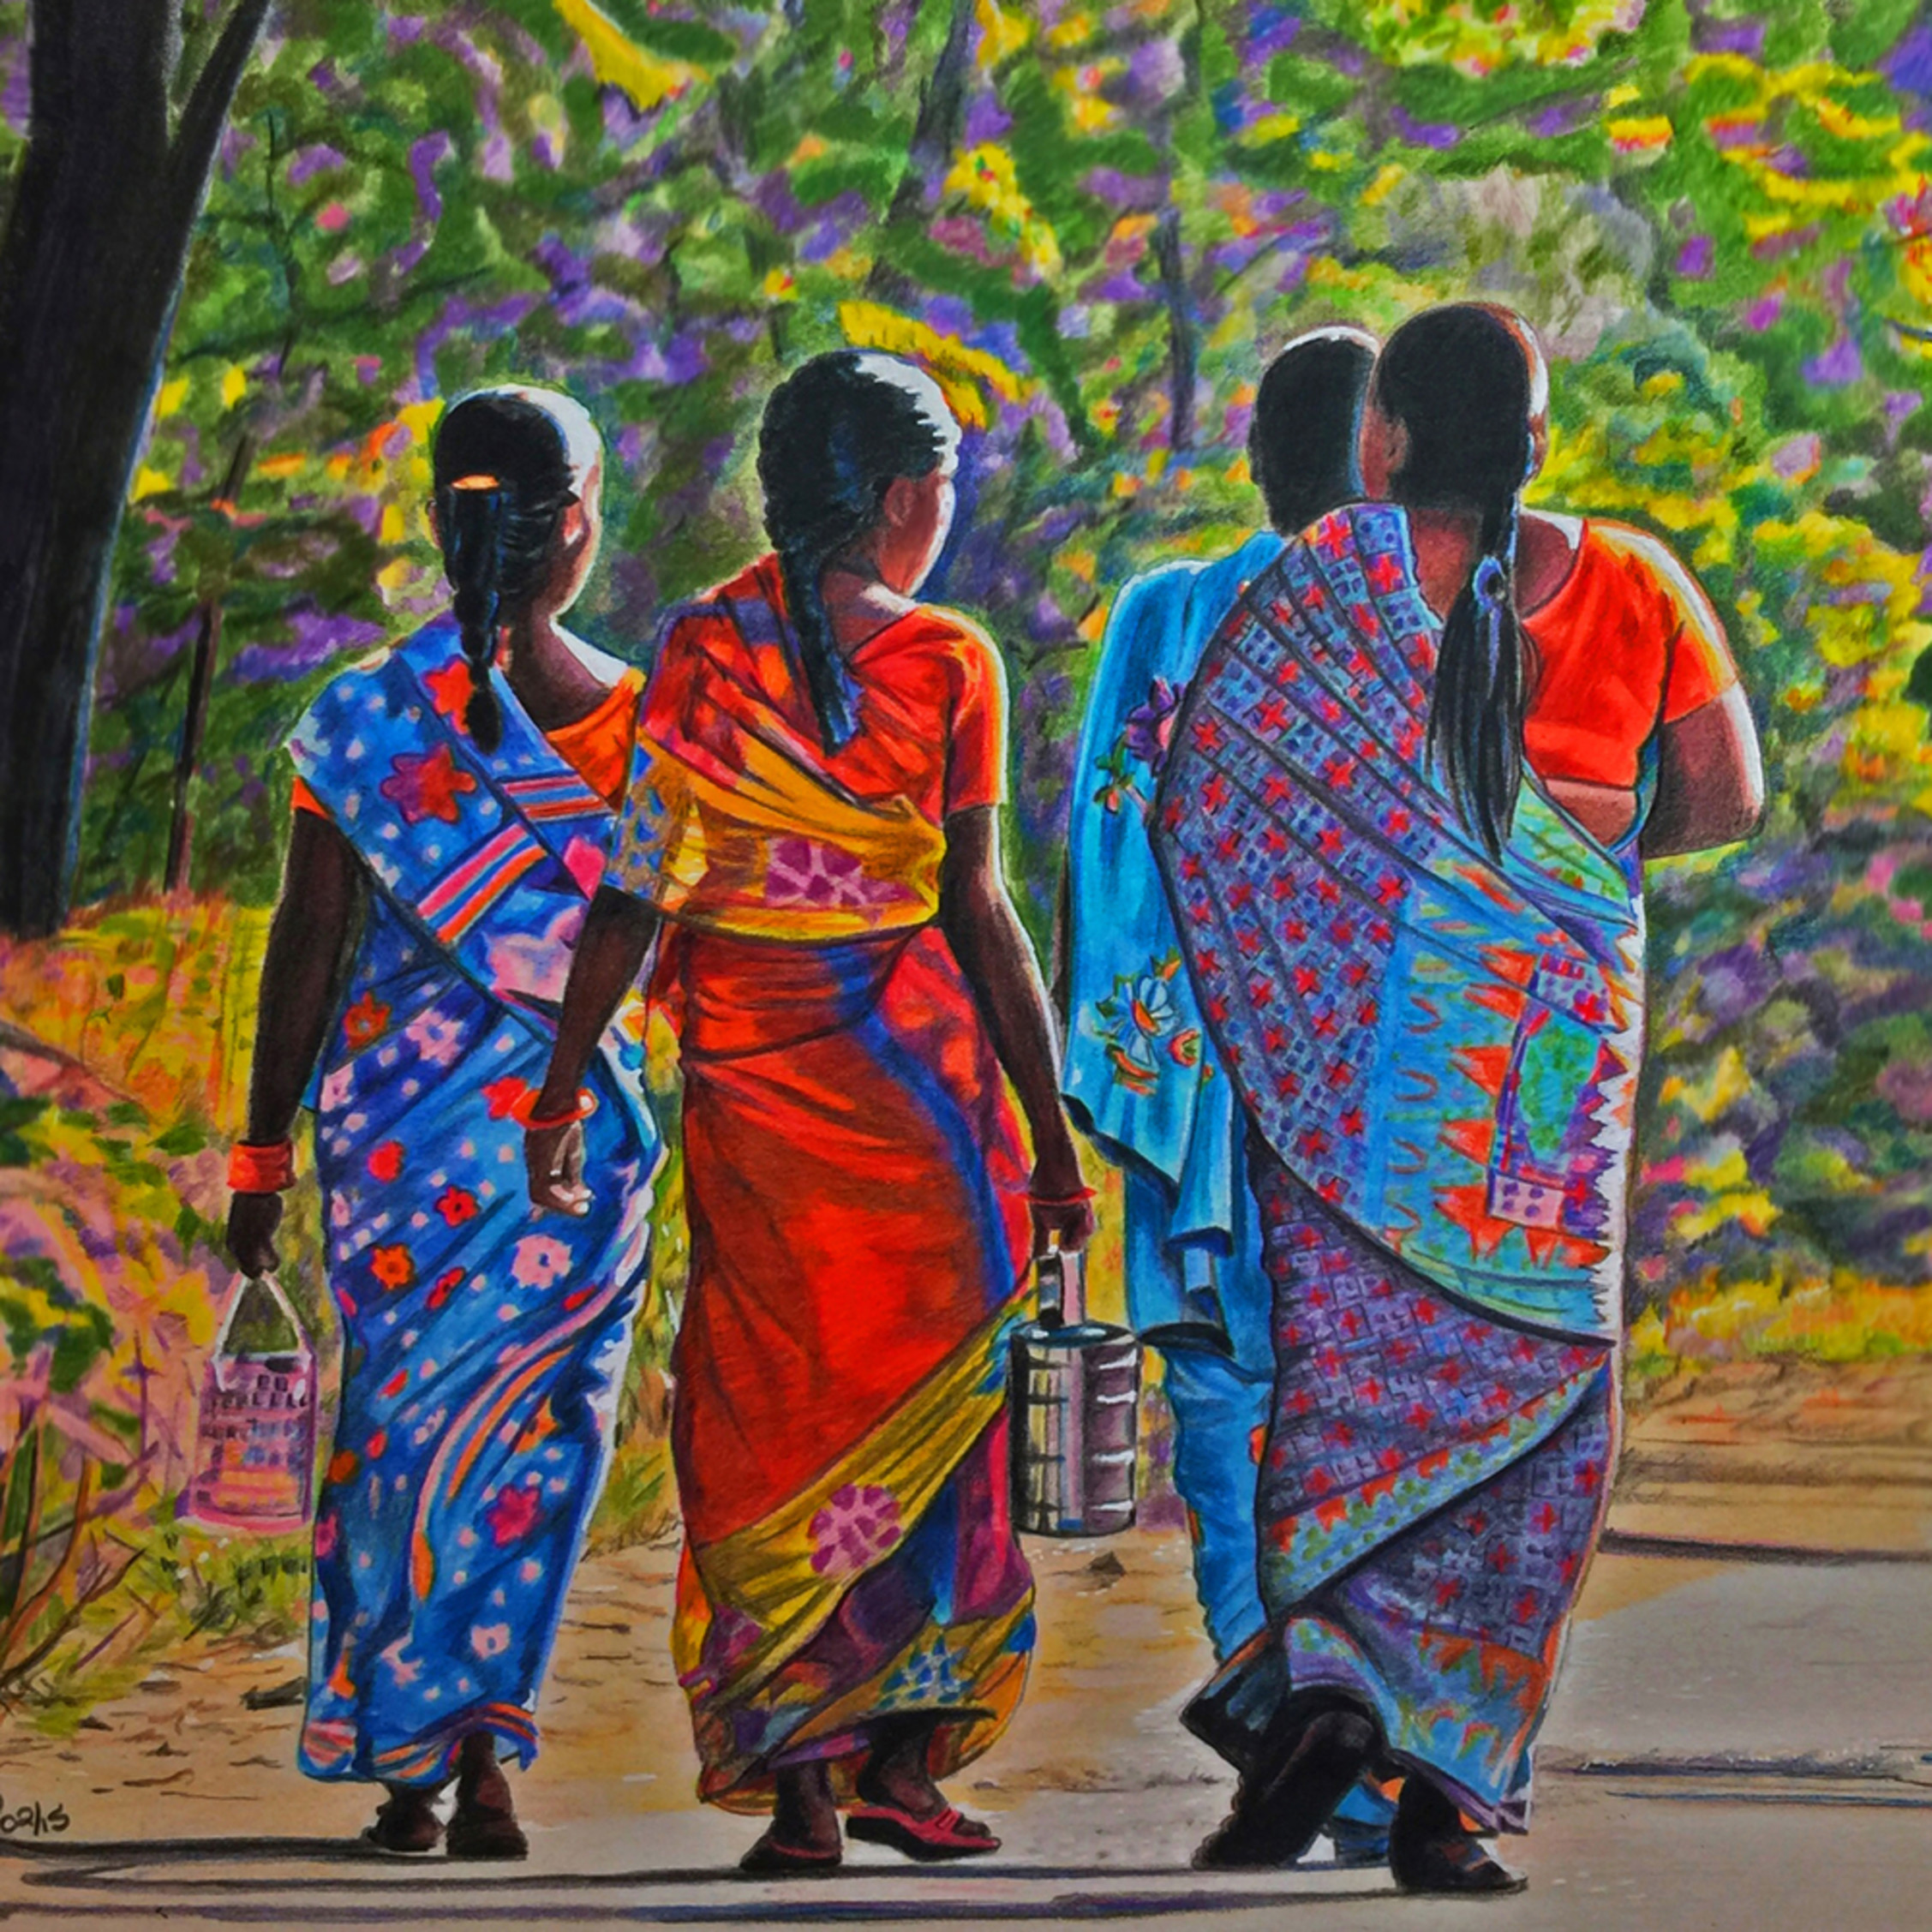 Wendylayne walking in india coloredpencil giclee print gjj1jg